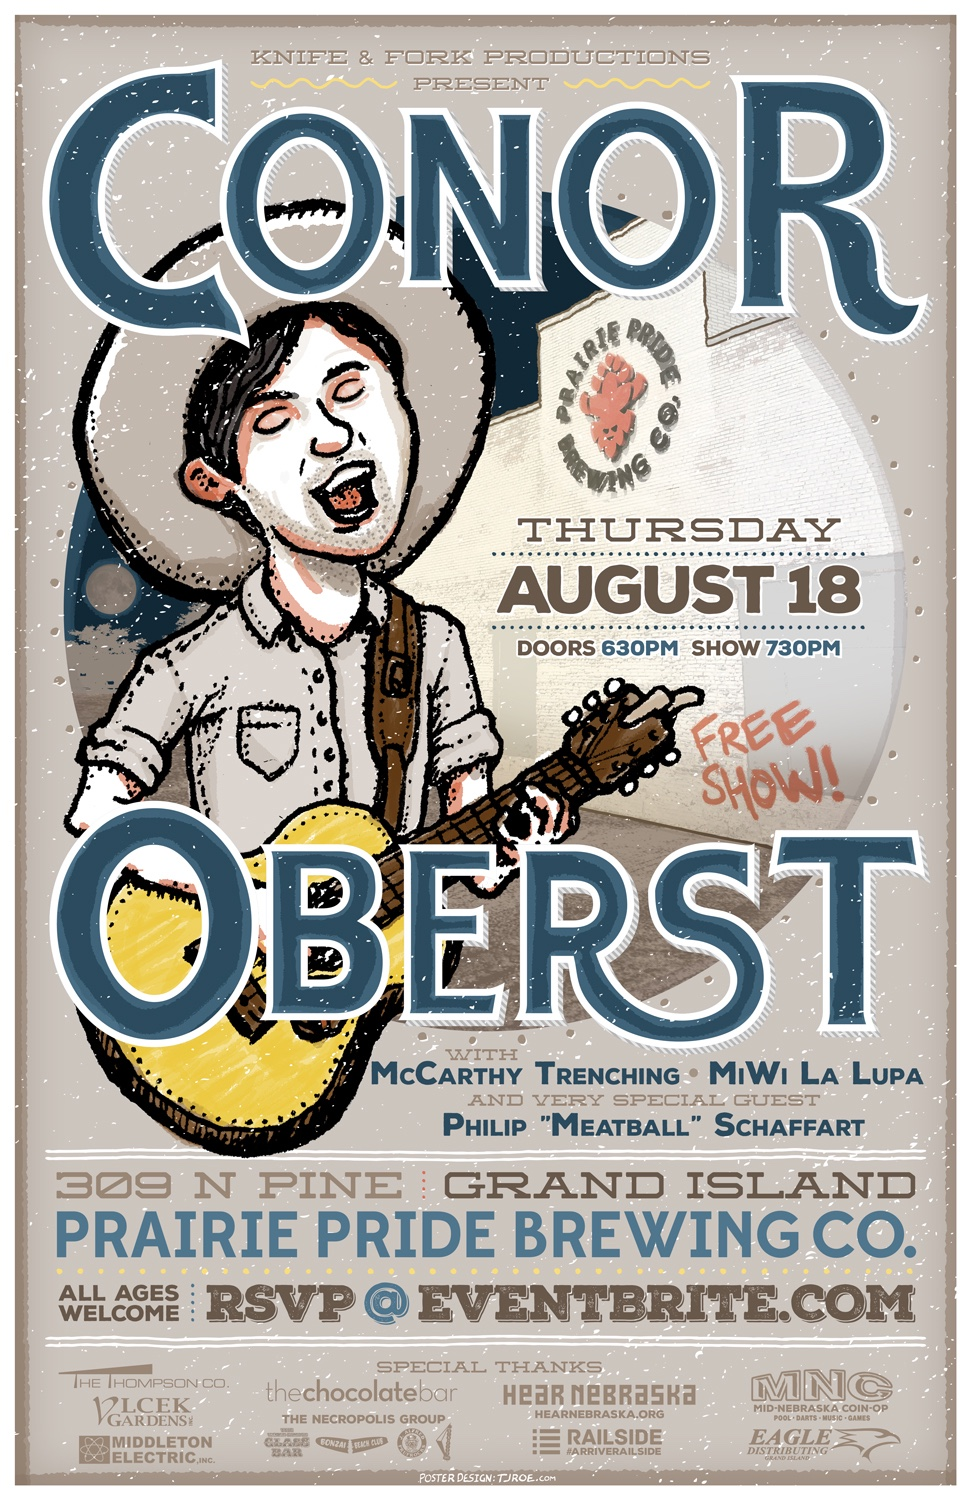 Conor Oberst Live in Grand Island Poster